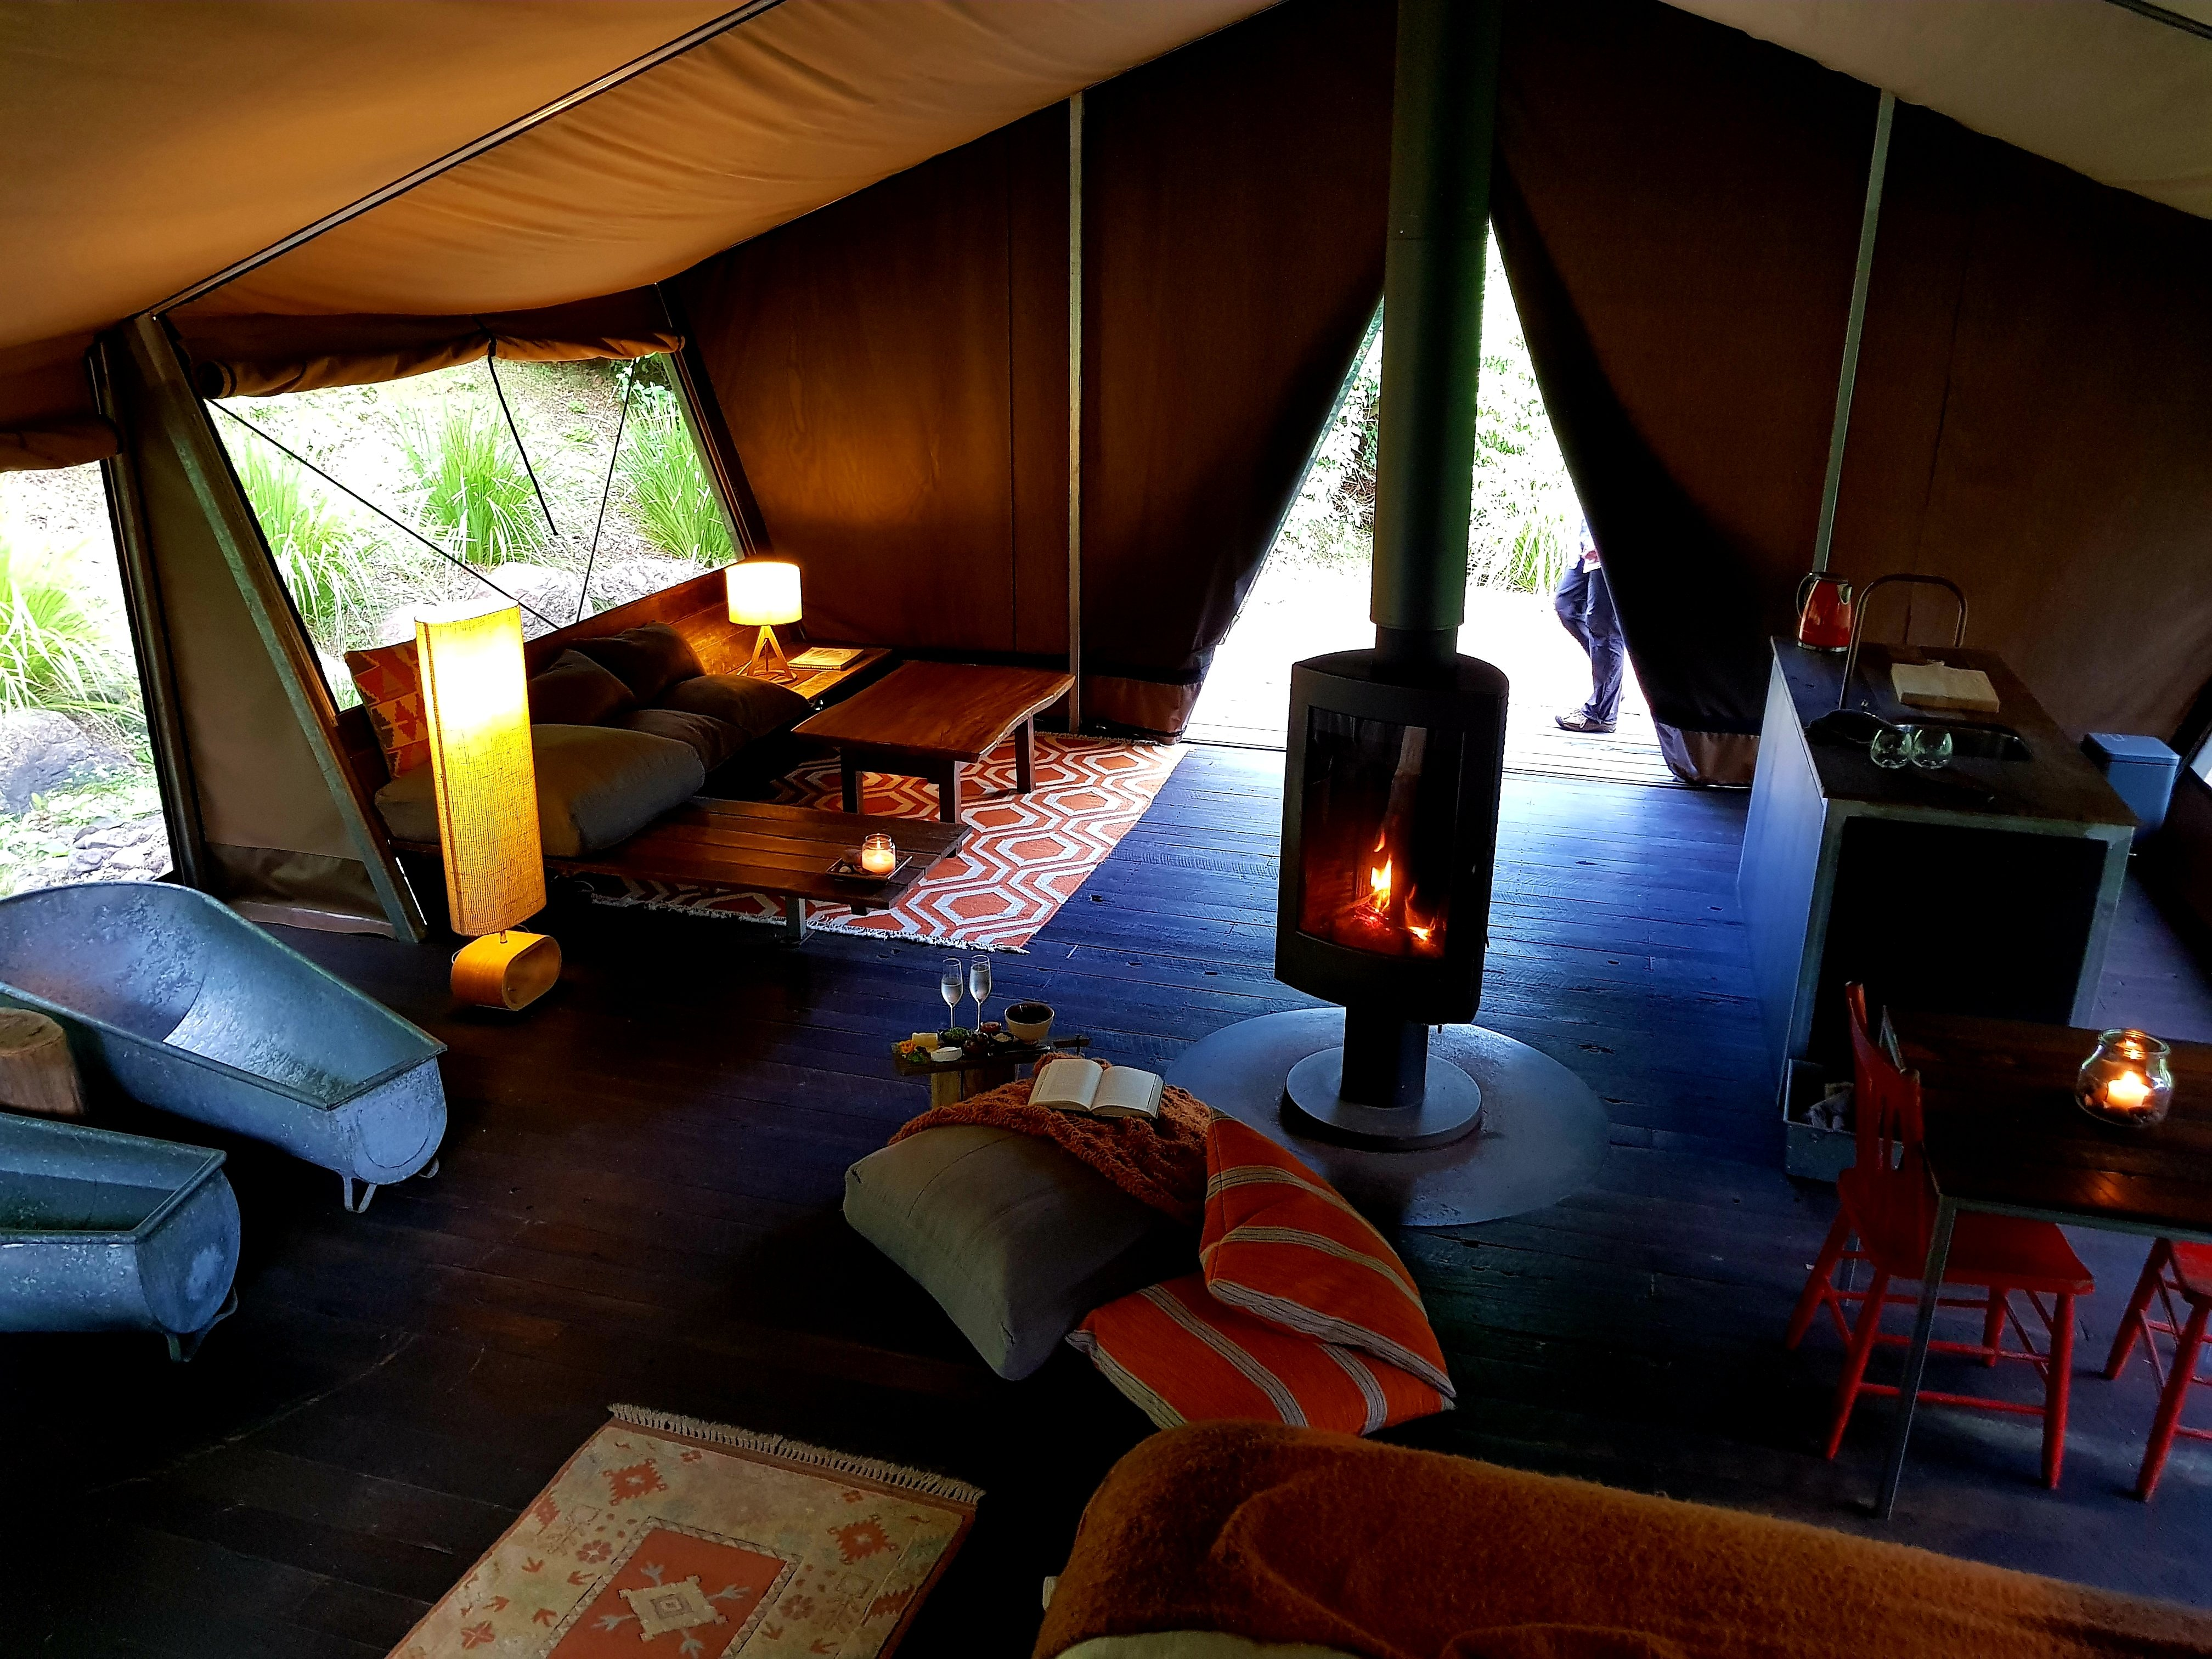 qld-glamping-inner-tent-view